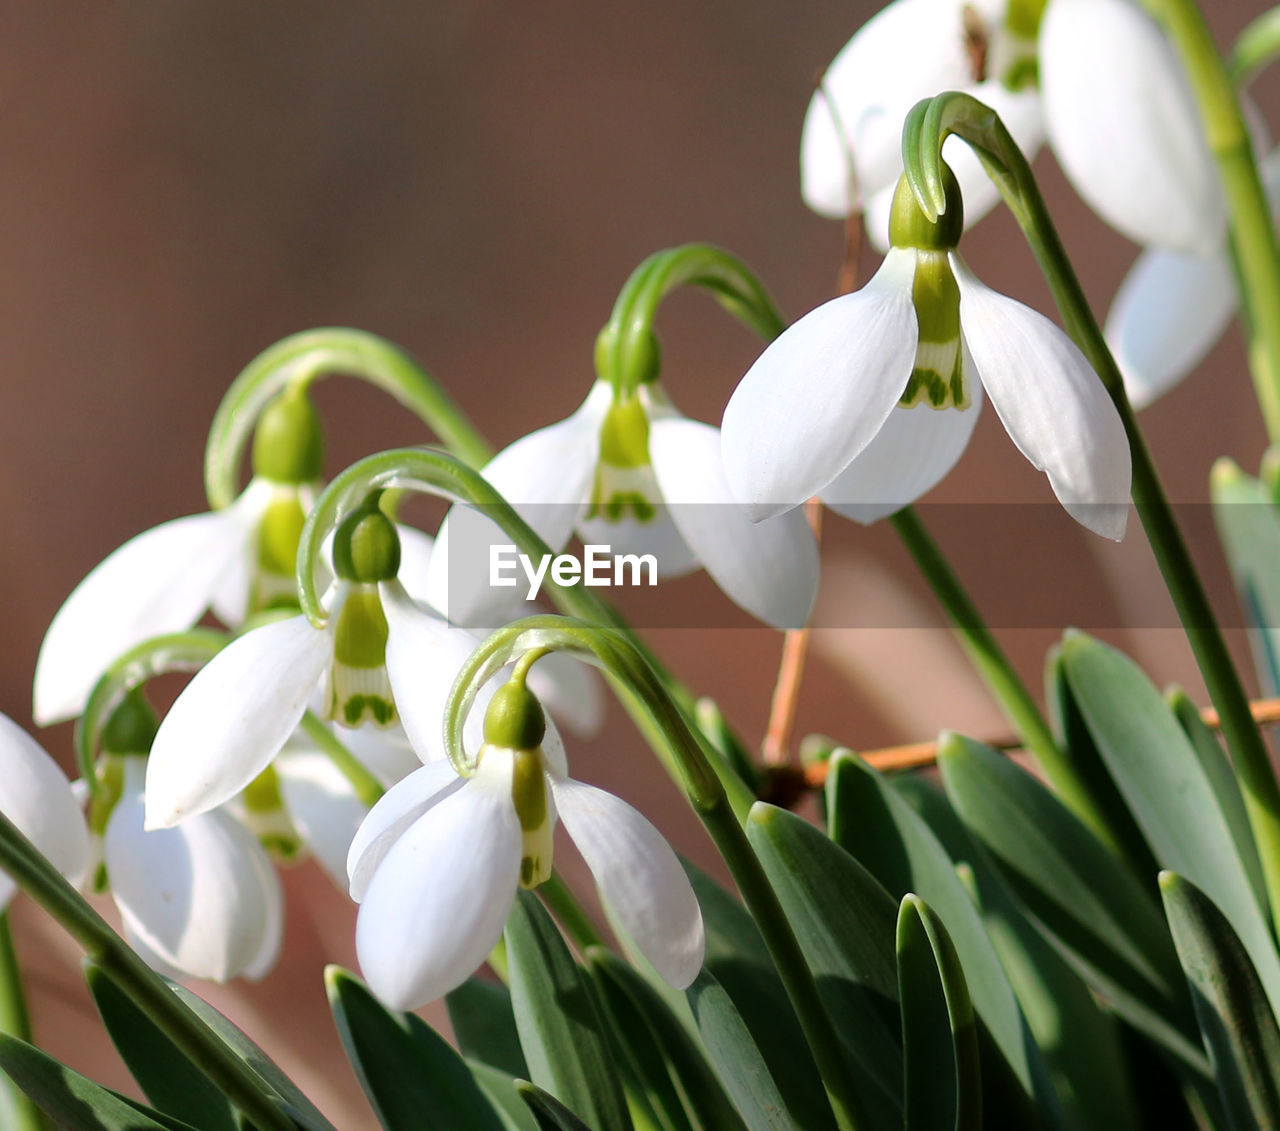 white color, nature, growth, petal, beauty in nature, fragility, plant, snowdrop, flower, freshness, flower head, close-up, no people, leaf, green color, day, blooming, outdoors